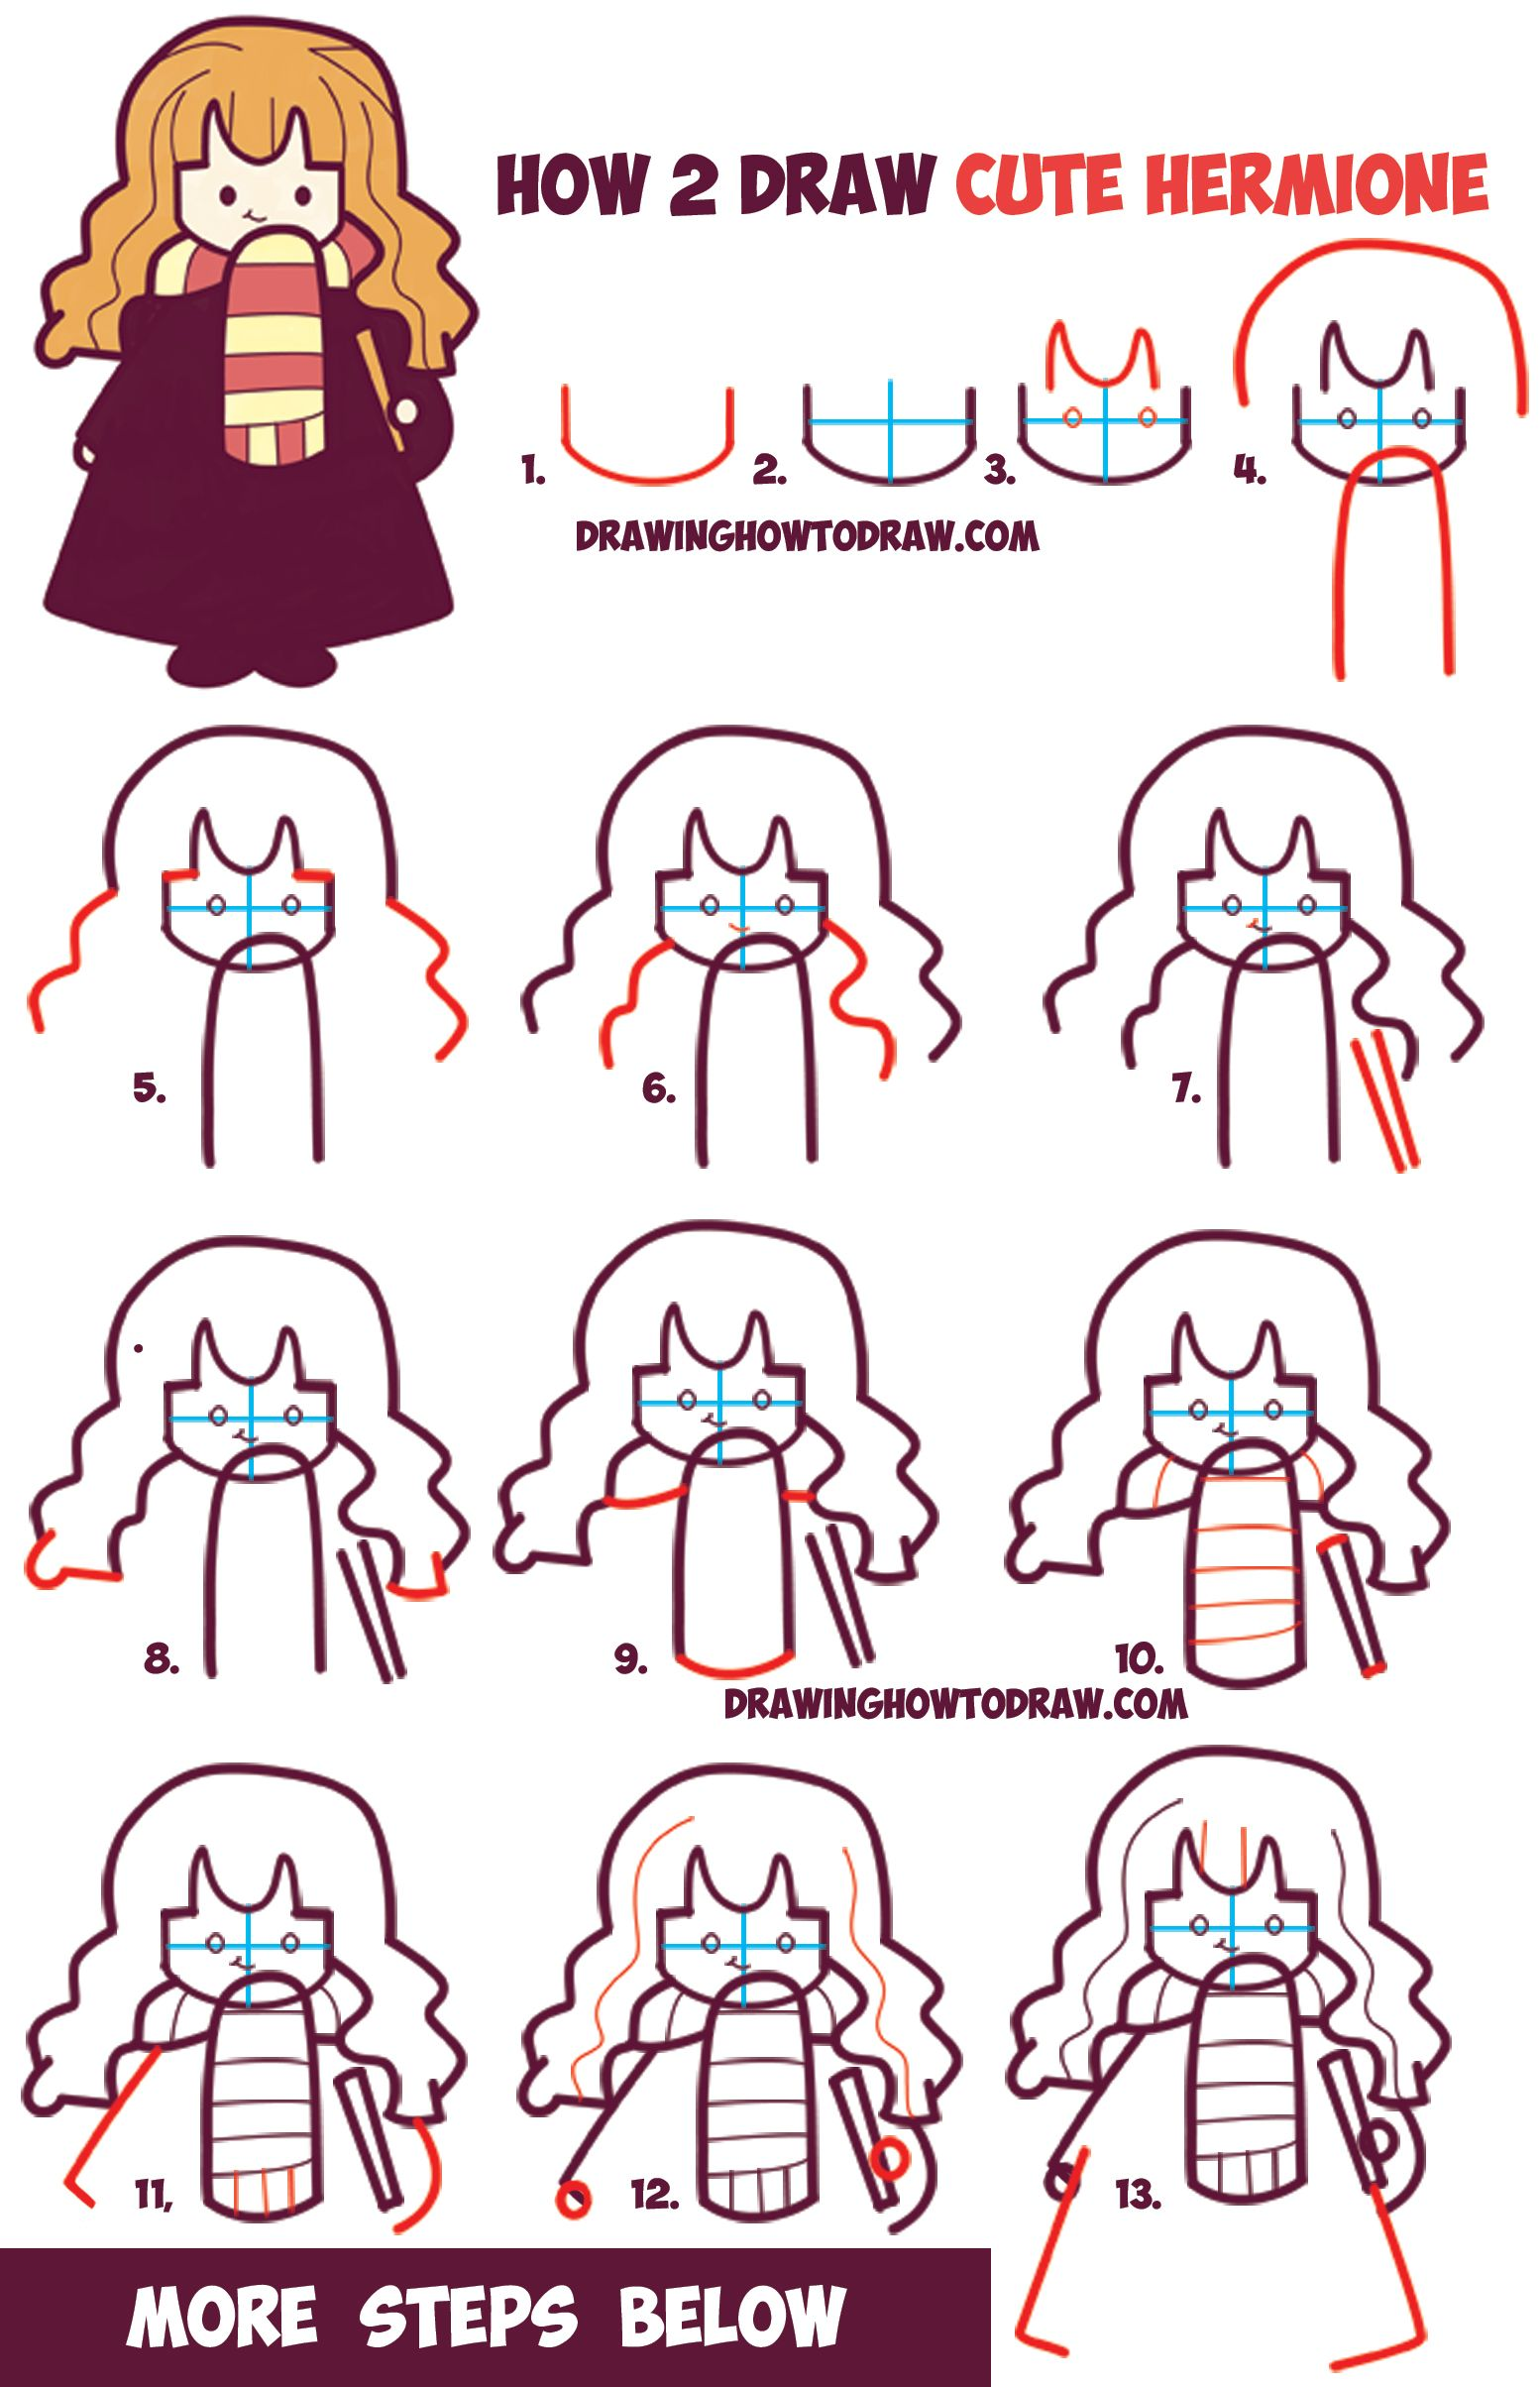 How To Draw Cute Hermione From Harry Potter Chibi